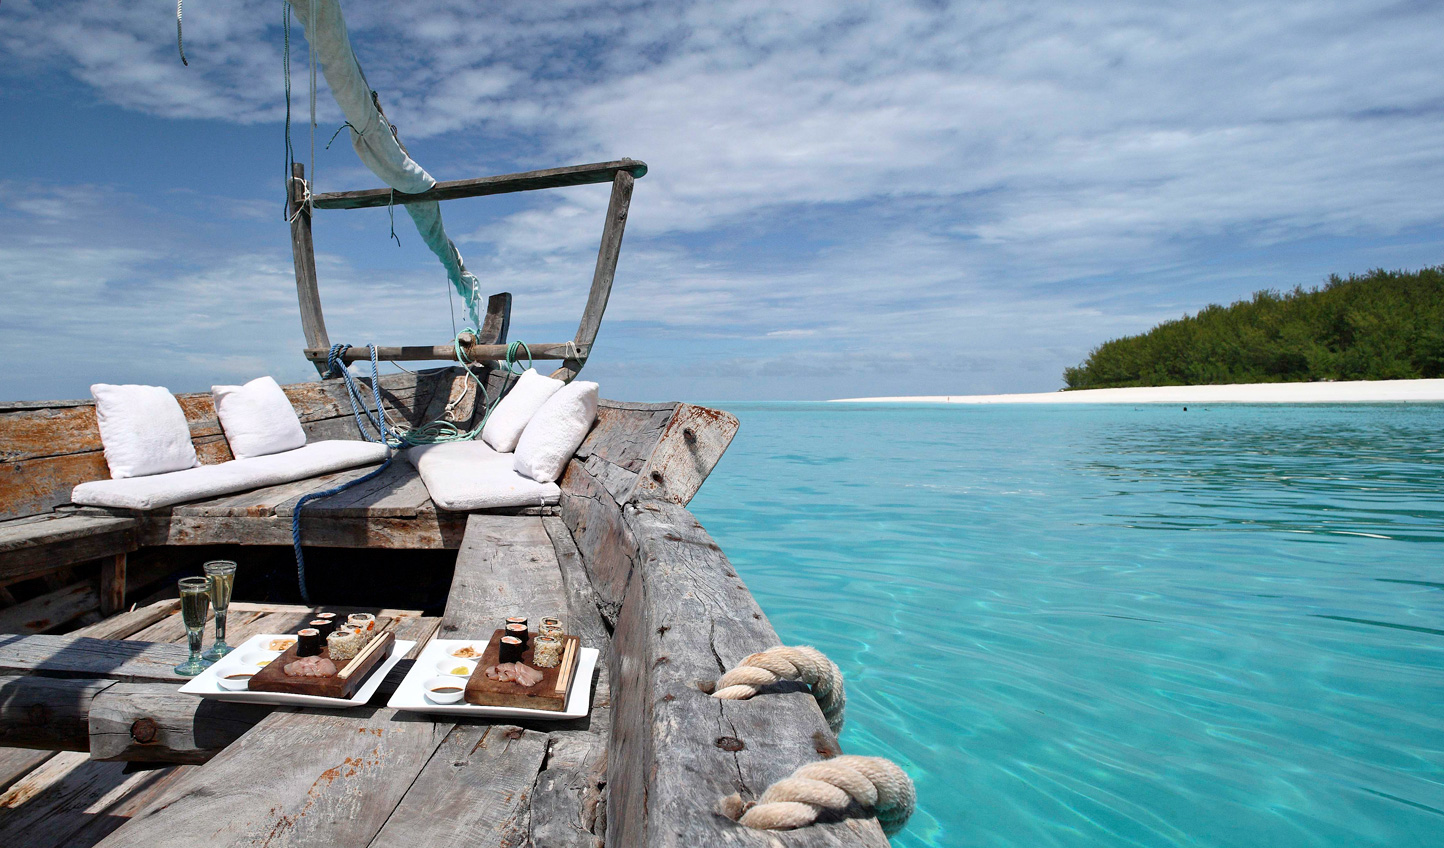 Private sailing charters with a picnic along the crystal-clear waters of the Indian Ocean